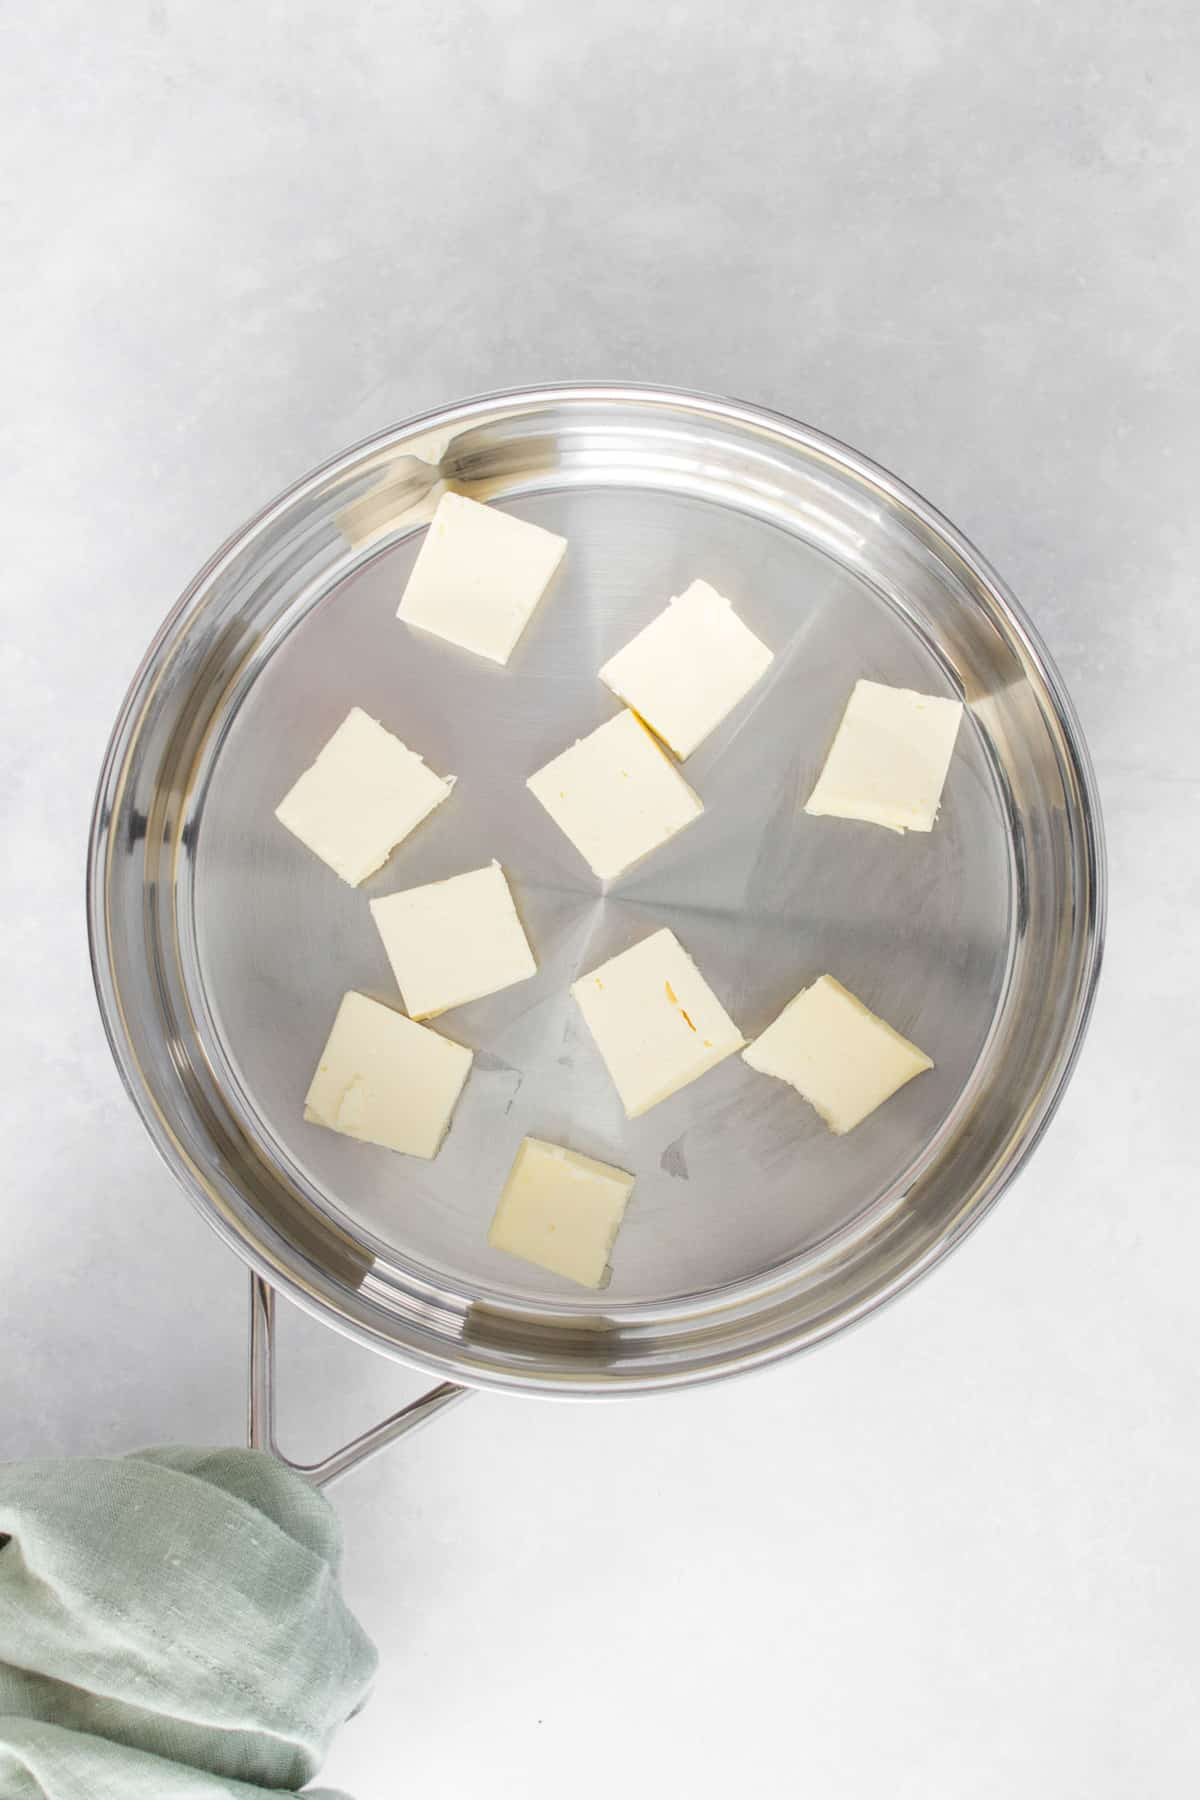 Cubed butter in a stainless steel saucepan/